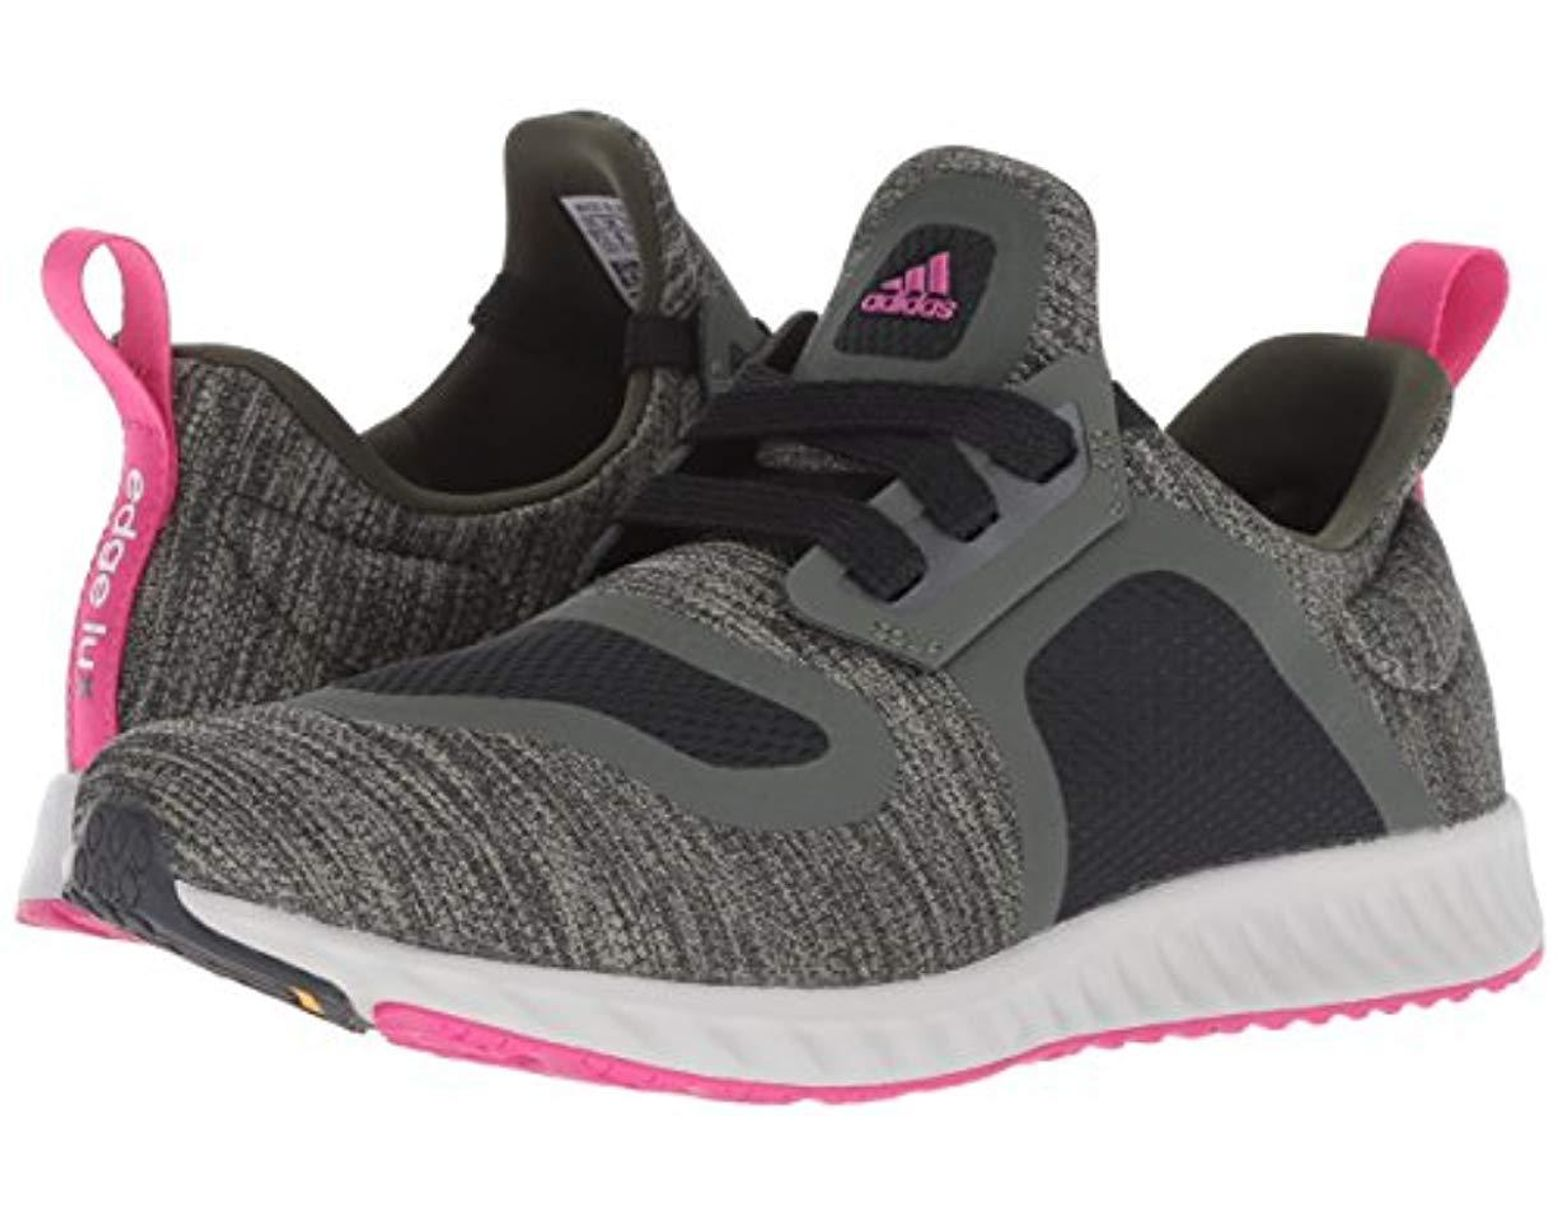 d57856e0a6c49 Adidas Originals Multicolor Adidas Edge Lux Clima Running Shoe, Base  Green/real Magenta/night Cargo, 10.5 M Us